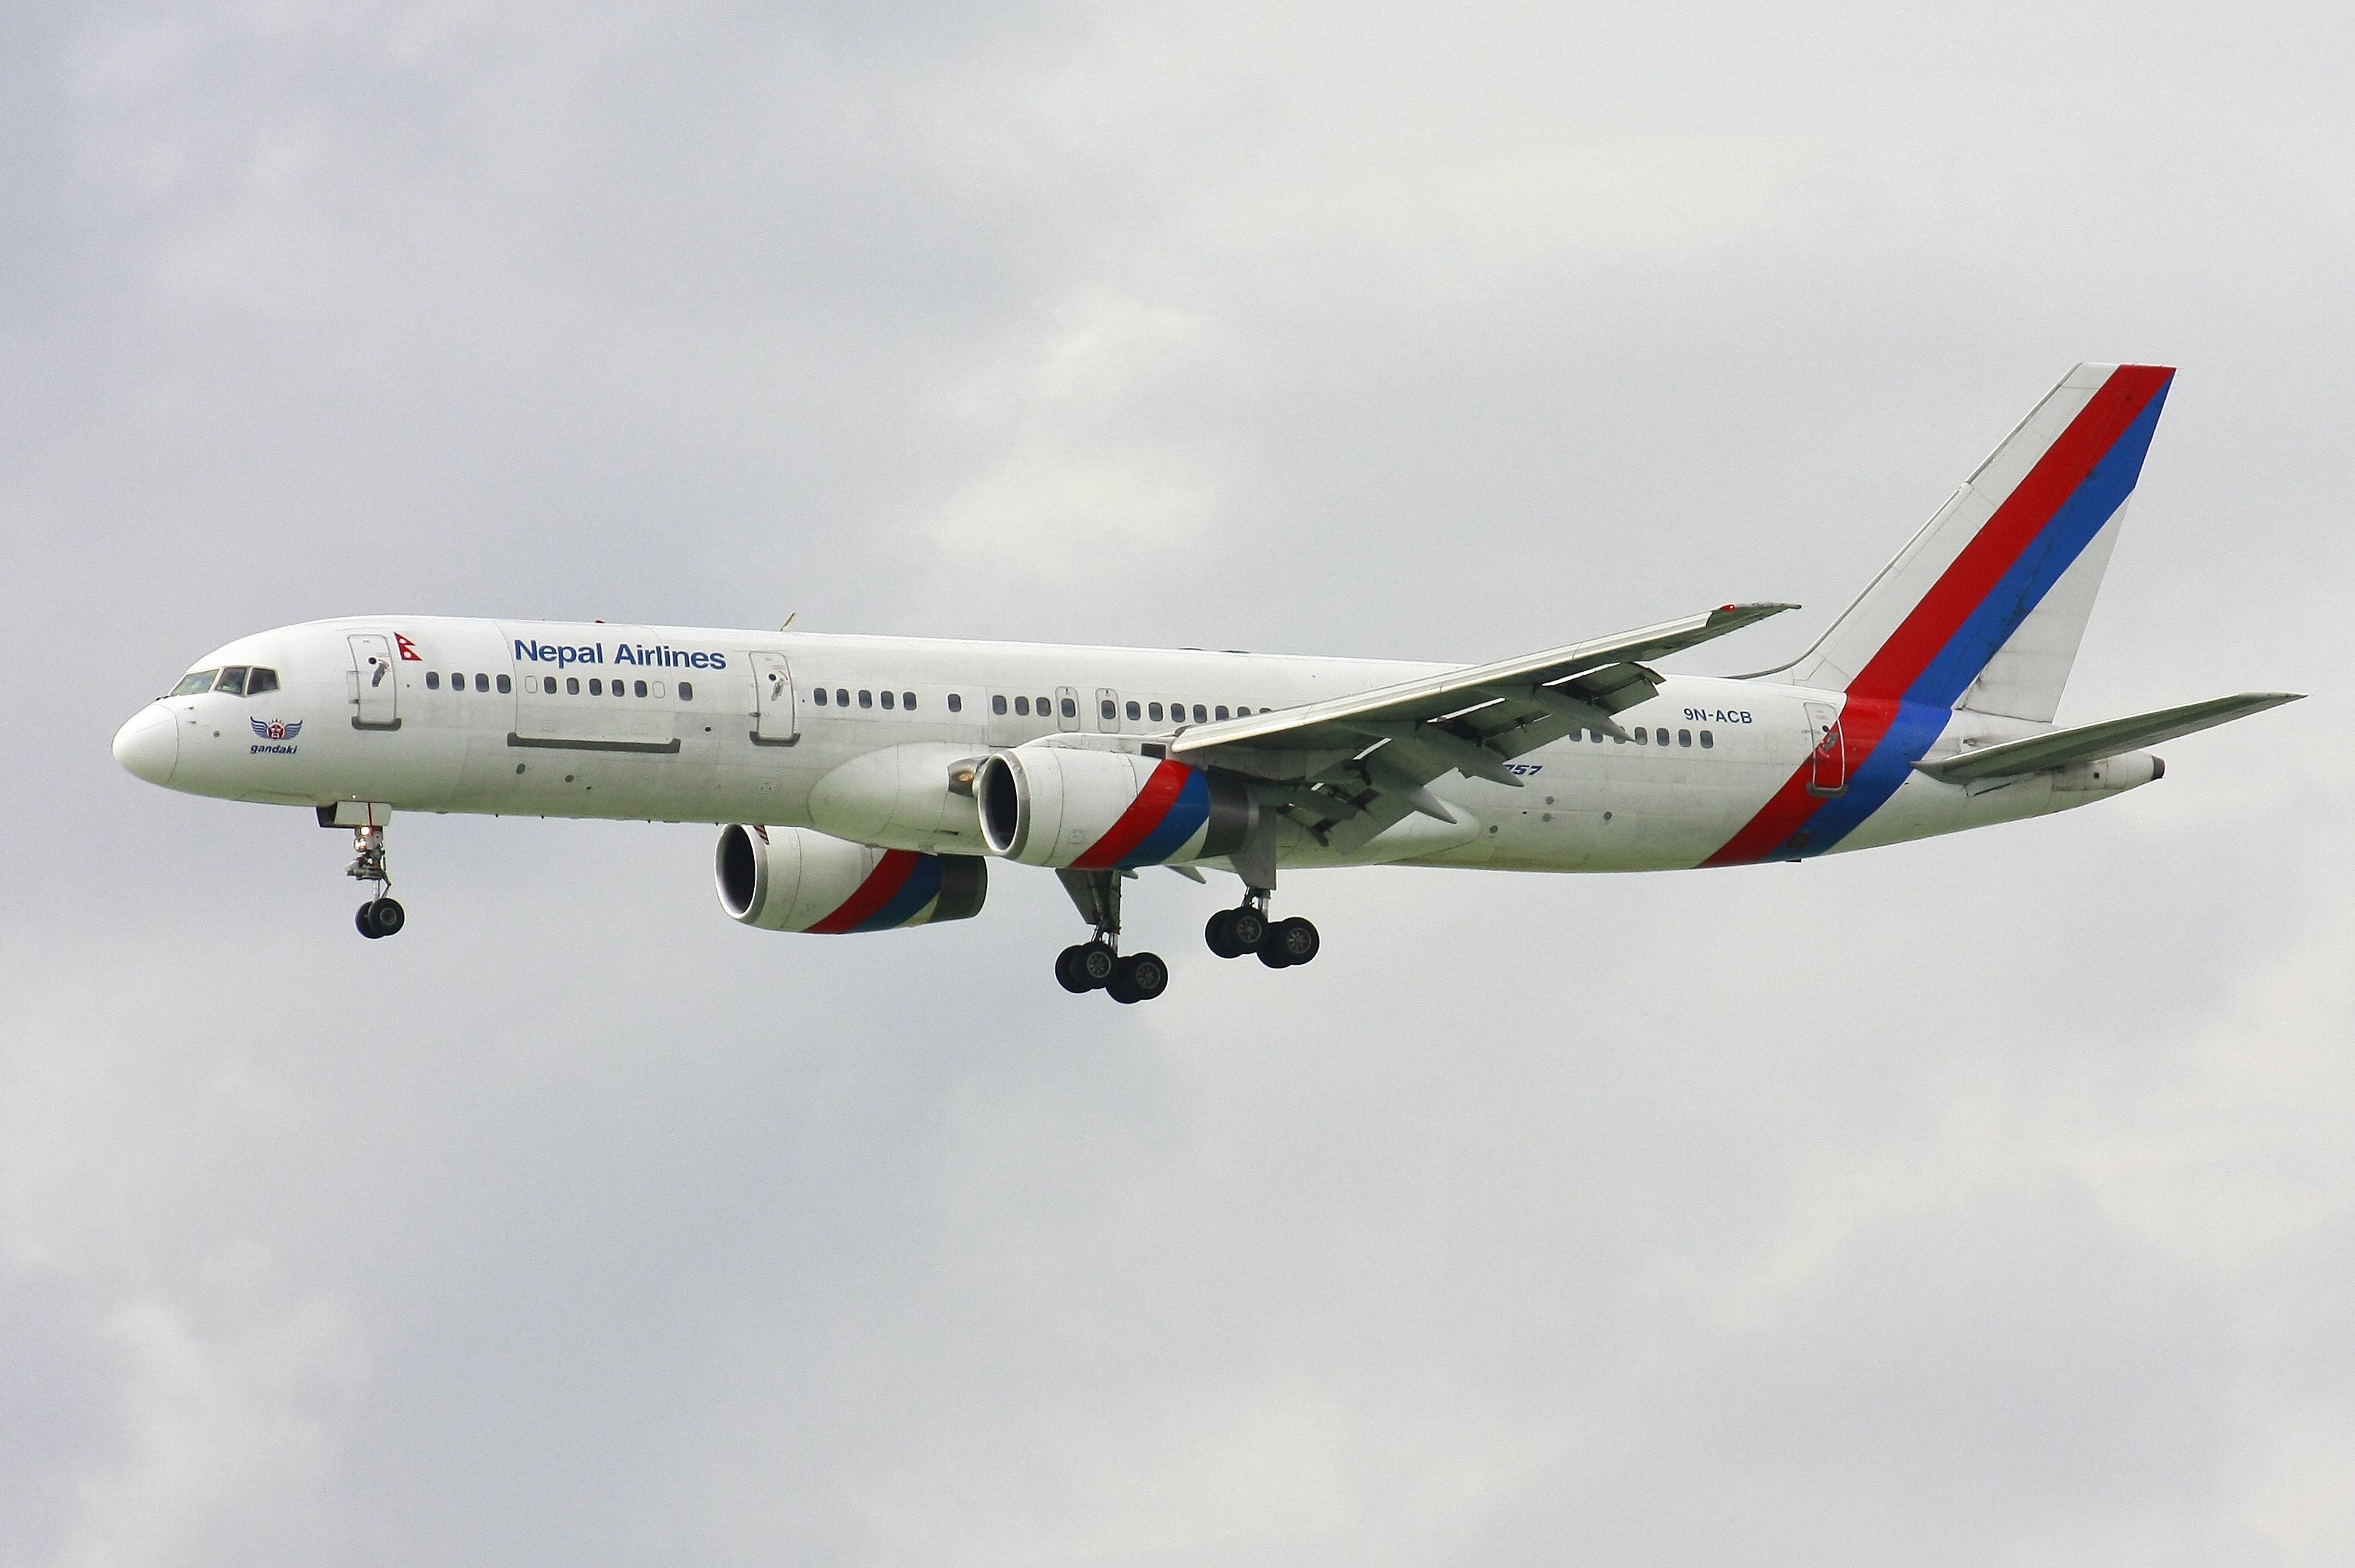 Nepal Airlines Boeing 757-aviationnepal.com